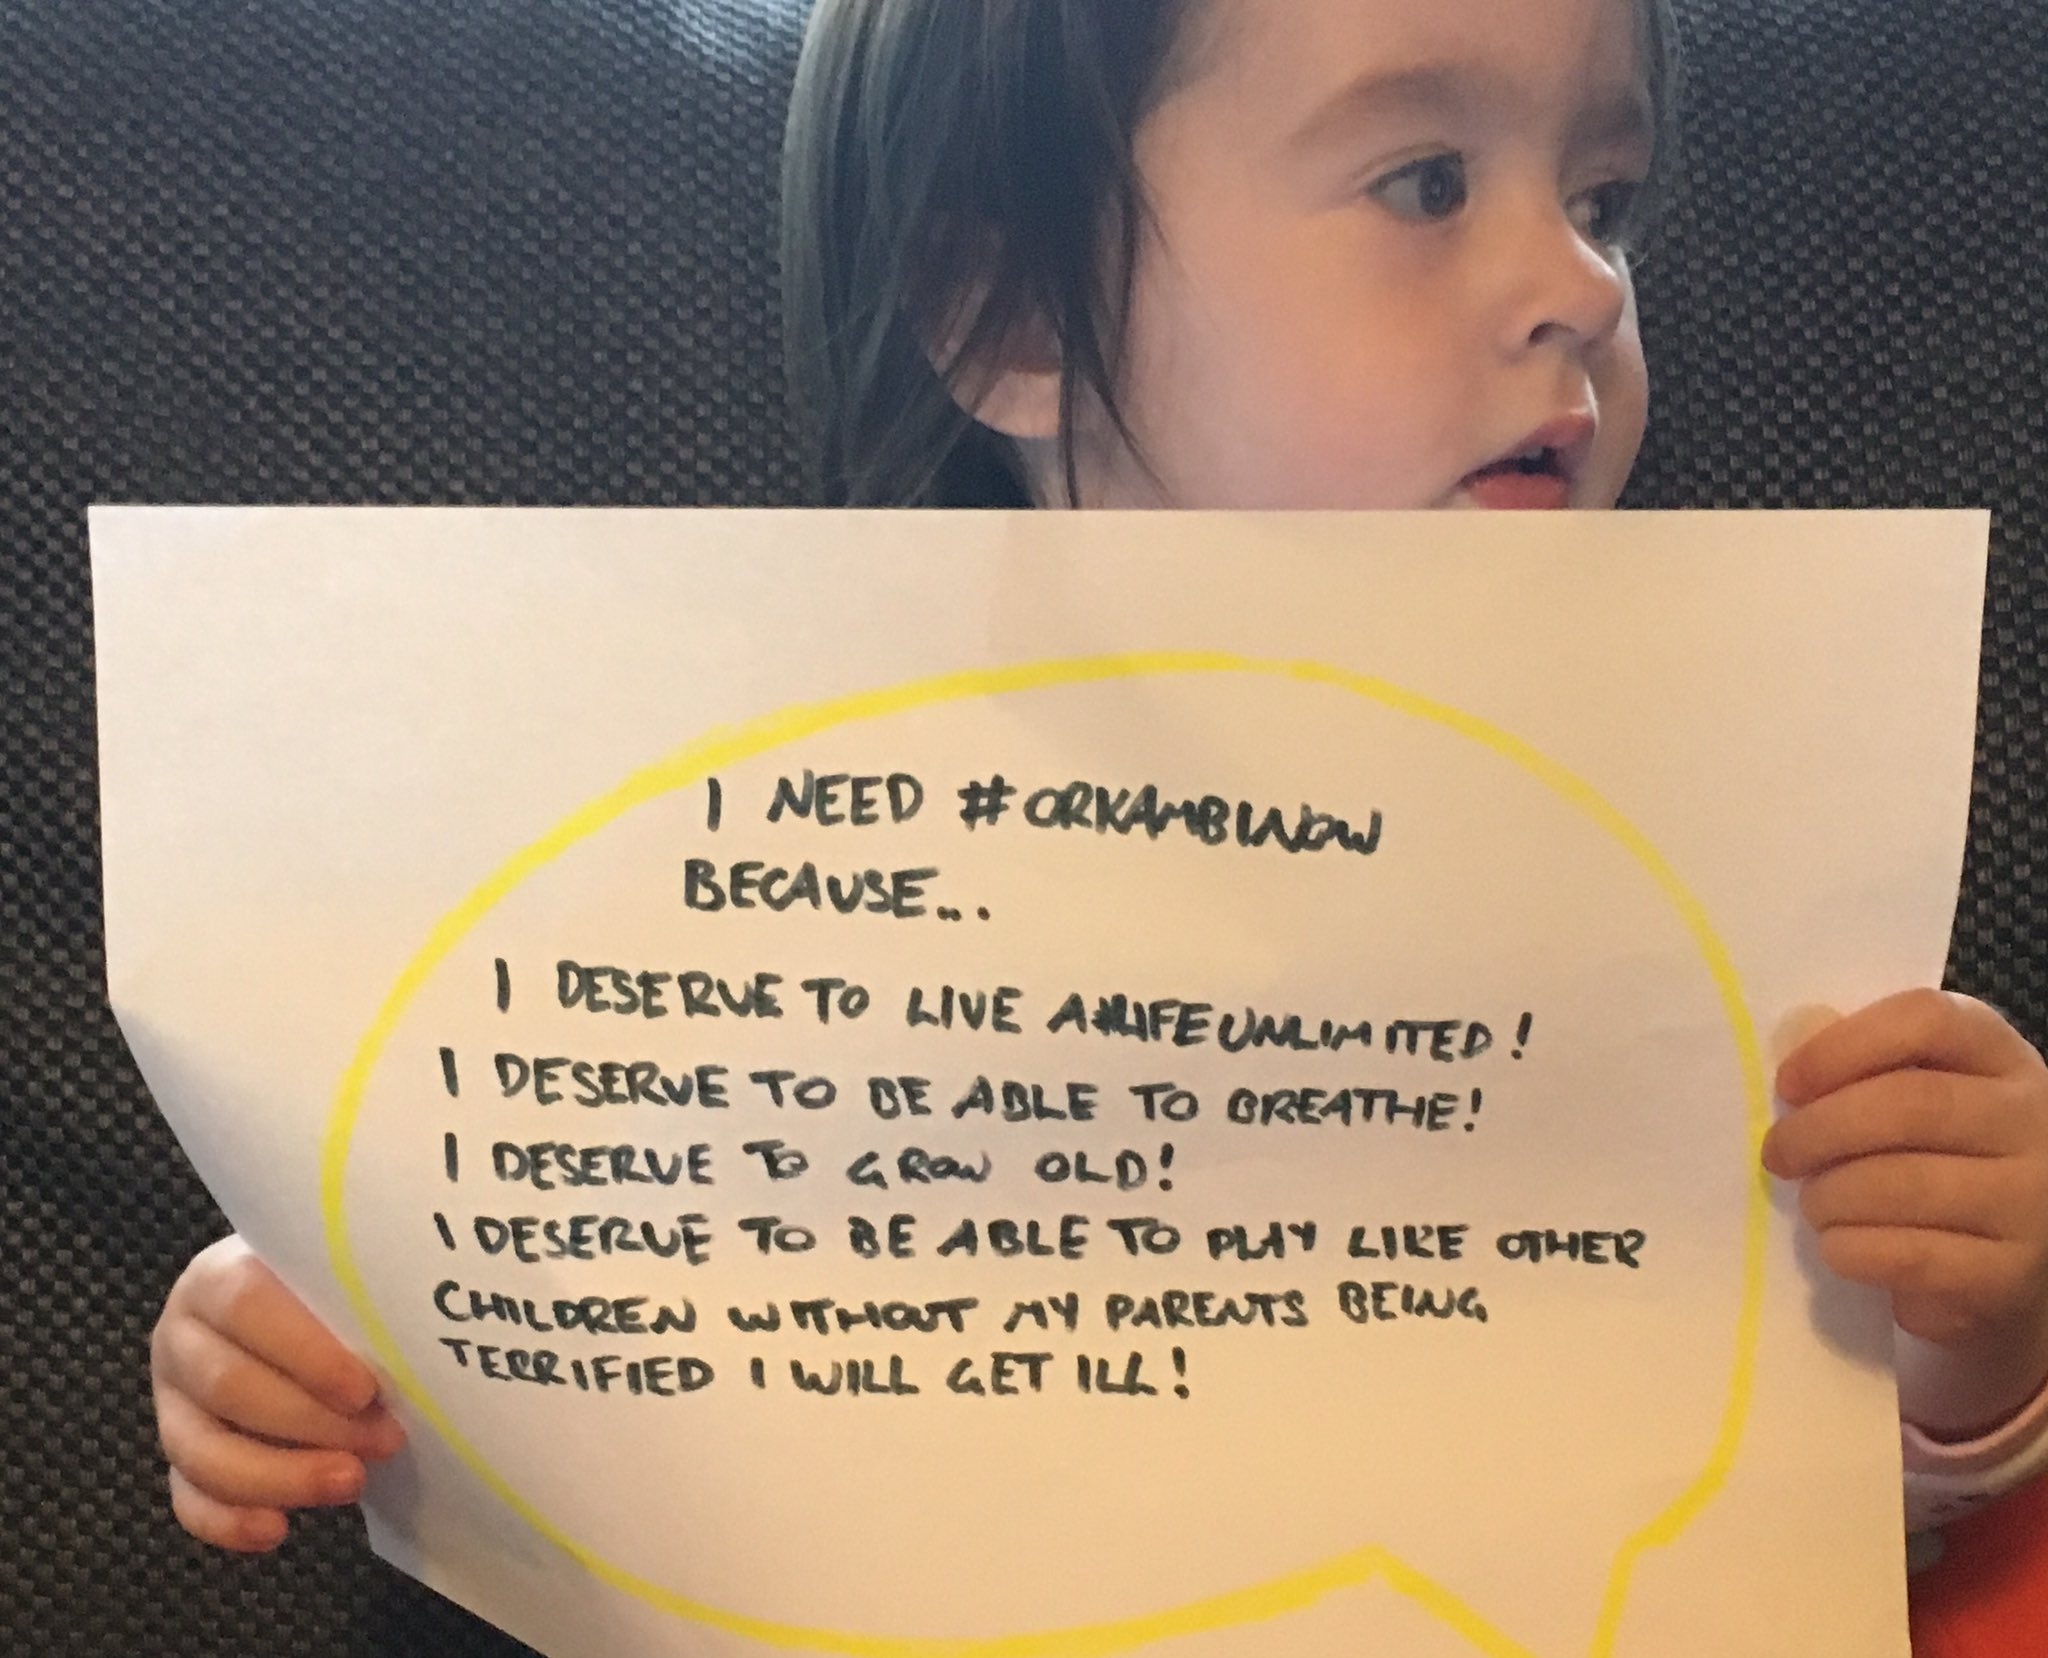 Orkambi could give young CF sufferers a near normal life expectancy! @VertexPharma @ShonaRobison please continue talks asap!#OrkambiNow https://t.co/0ZPq0qpKov